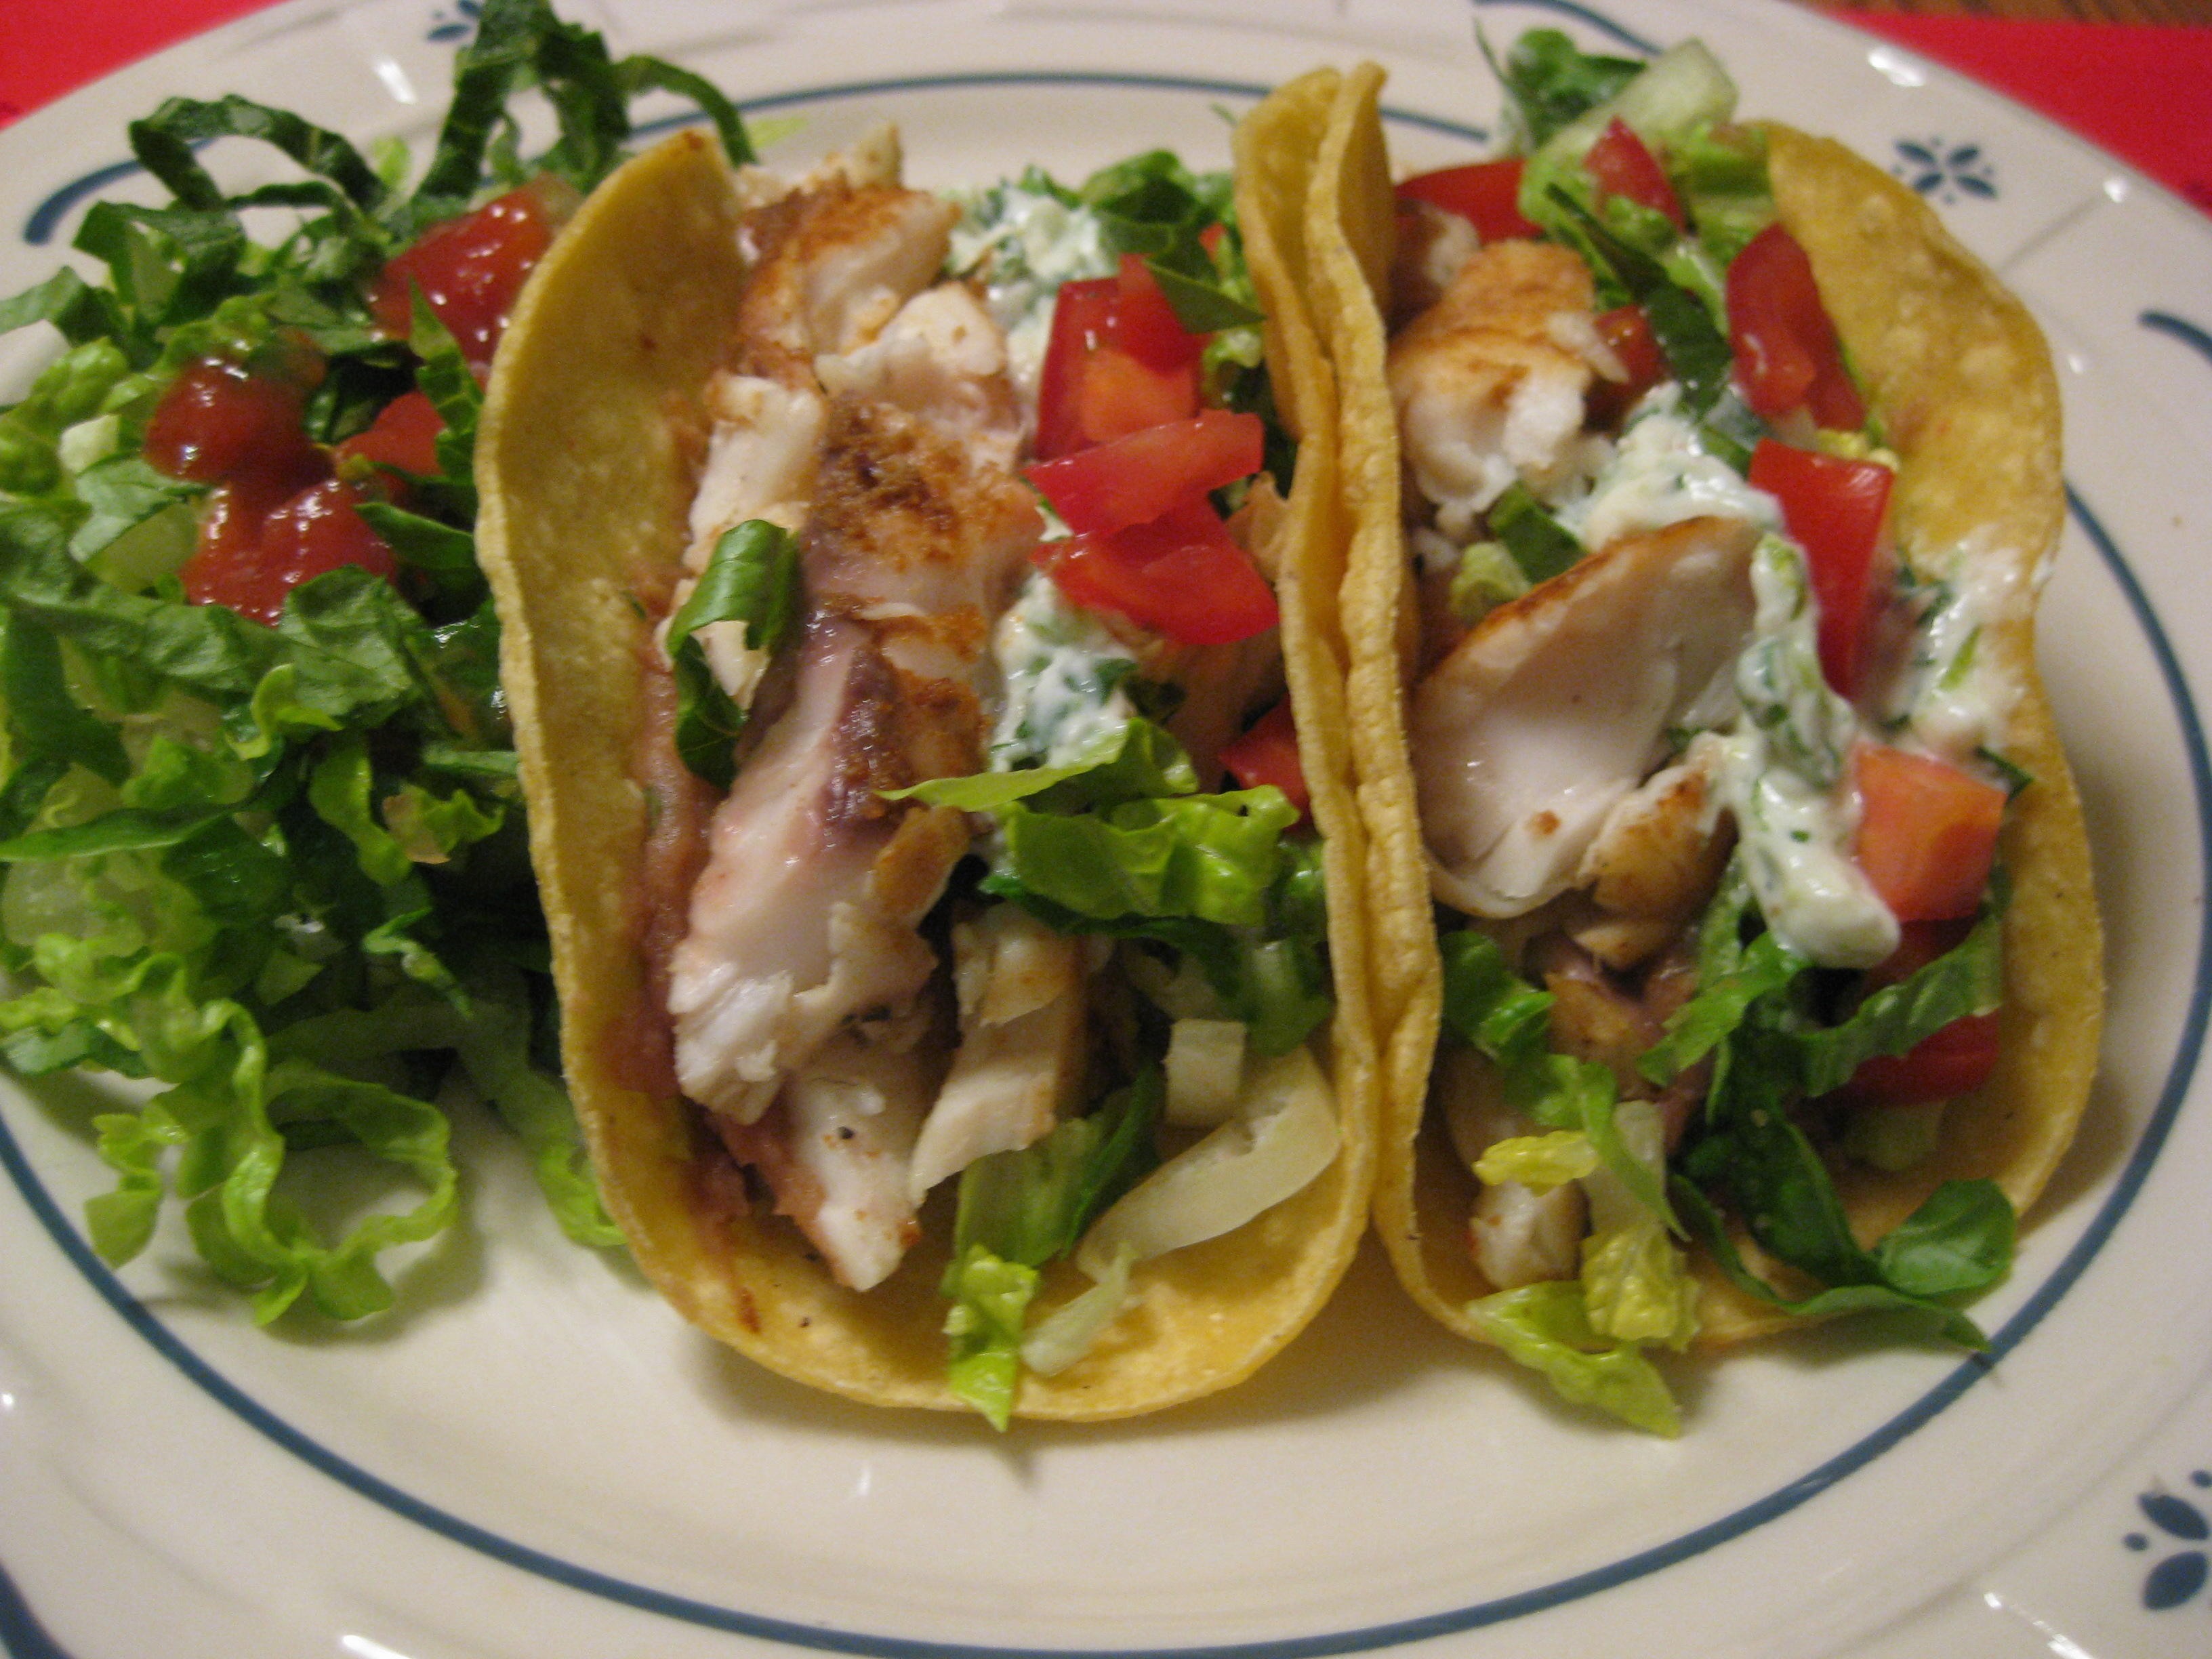 ... tacos with fish tacos tilapia fish tacos with fried fish in each taco